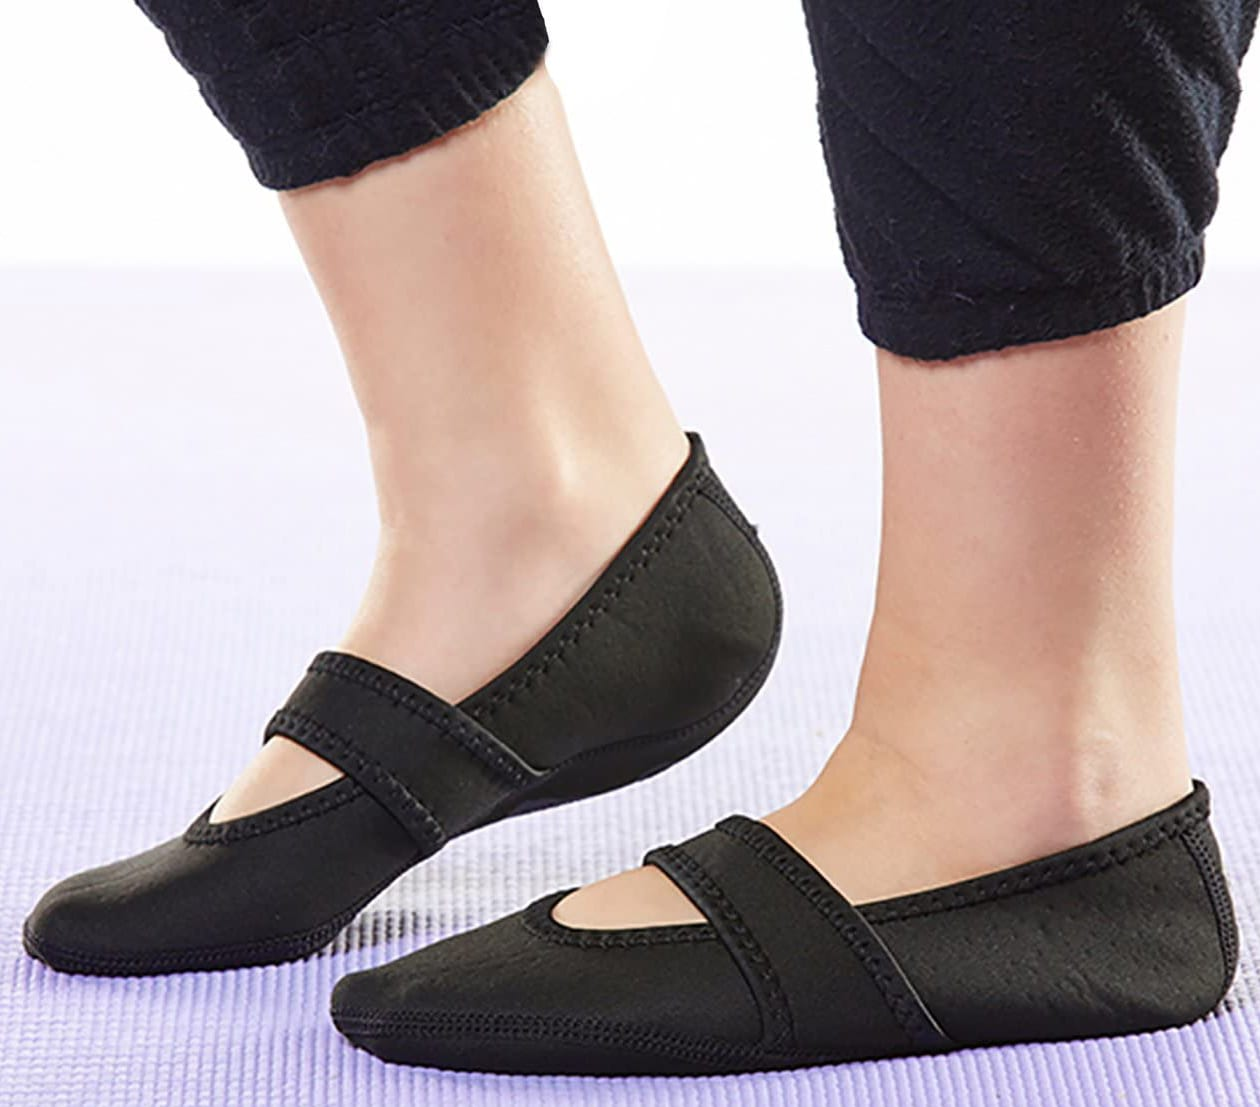 This style from Nufoot combines the elegance of ballet flats with the fun style of Mary Janes